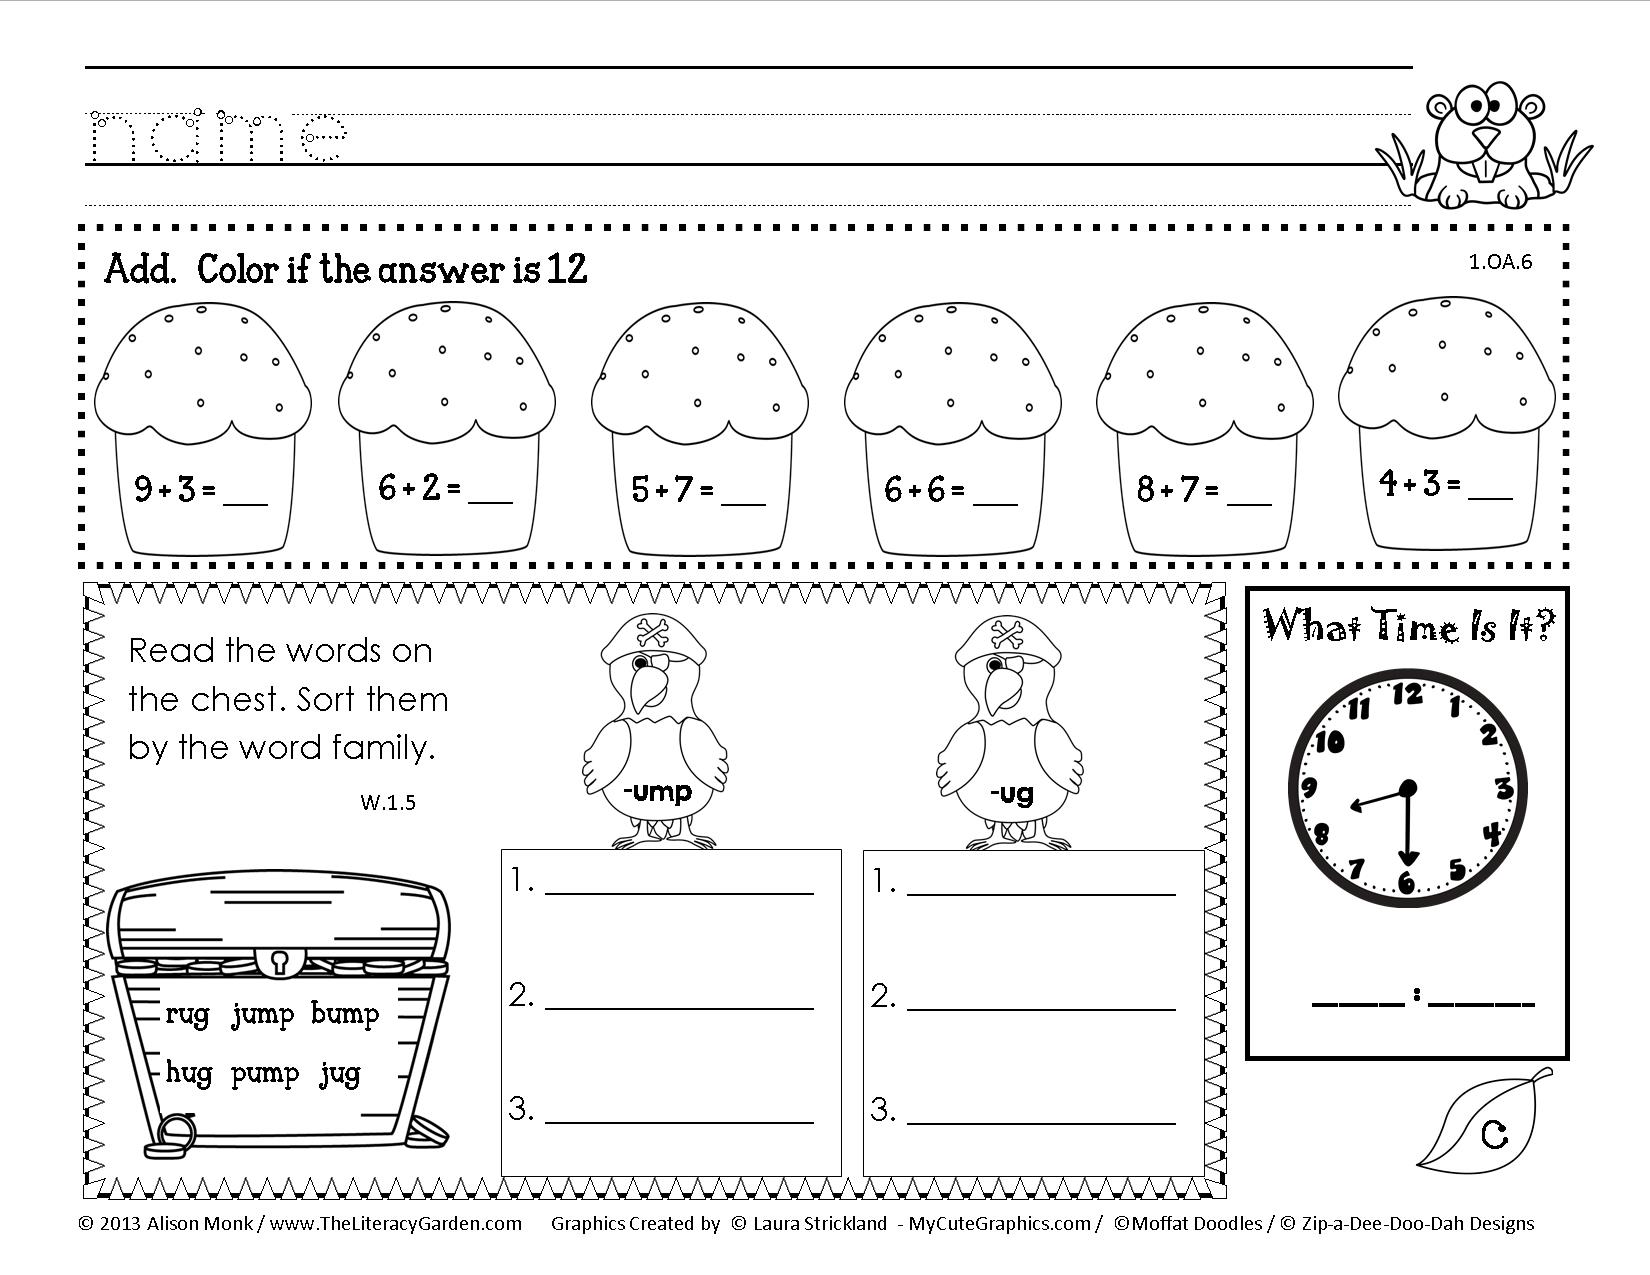 Worksheets Daily Morning Work 1st Grade common core morning work a vast array of math reading and language skills covered best all kids love it i have gotten wonderful feedback from teachers using the daily